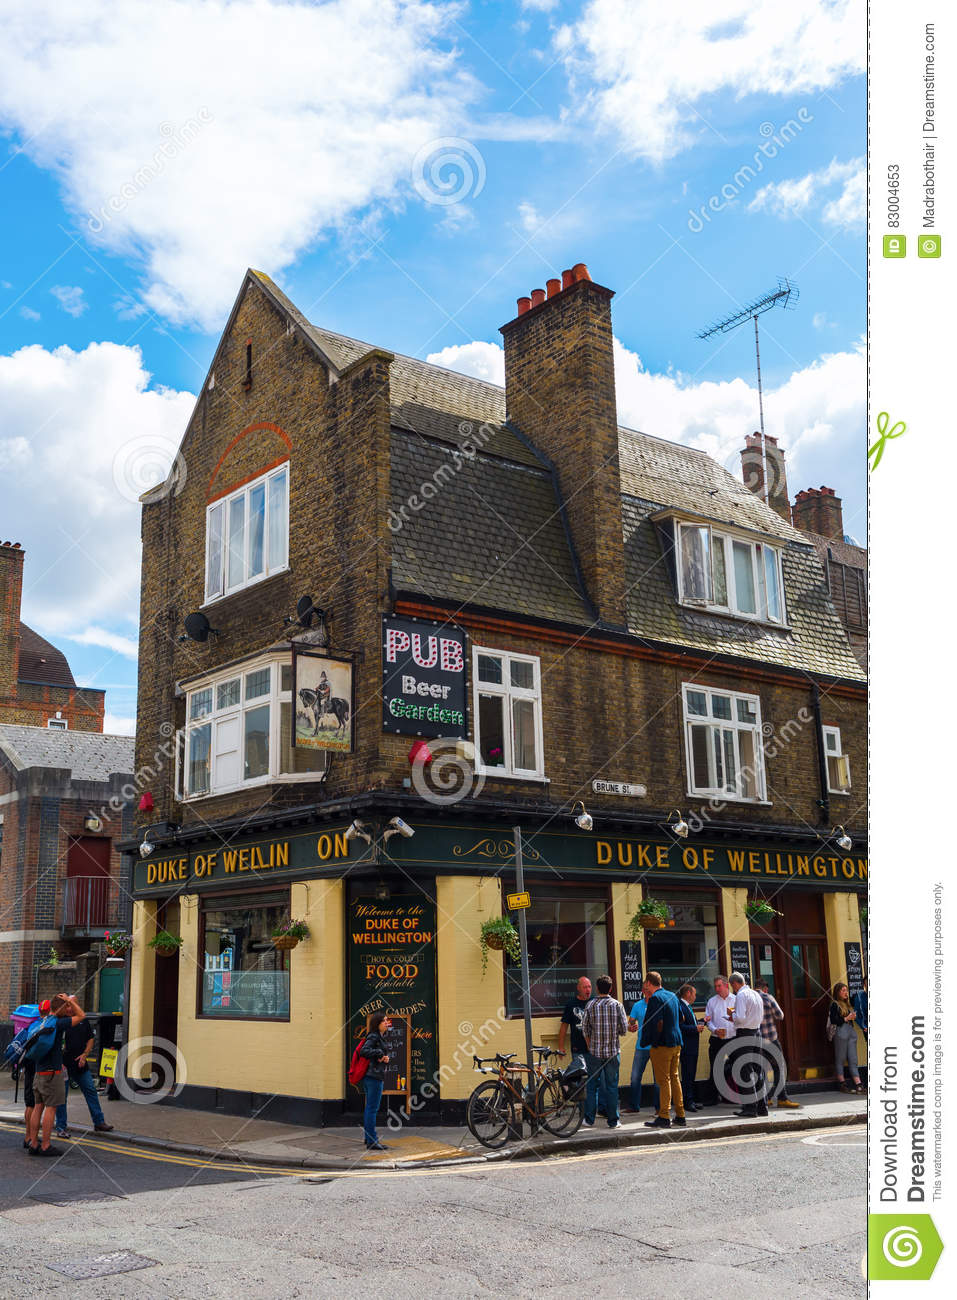 Shoreditch London Uk: Old Pub In Shoreditch, London, UK Editorial Stock Photo